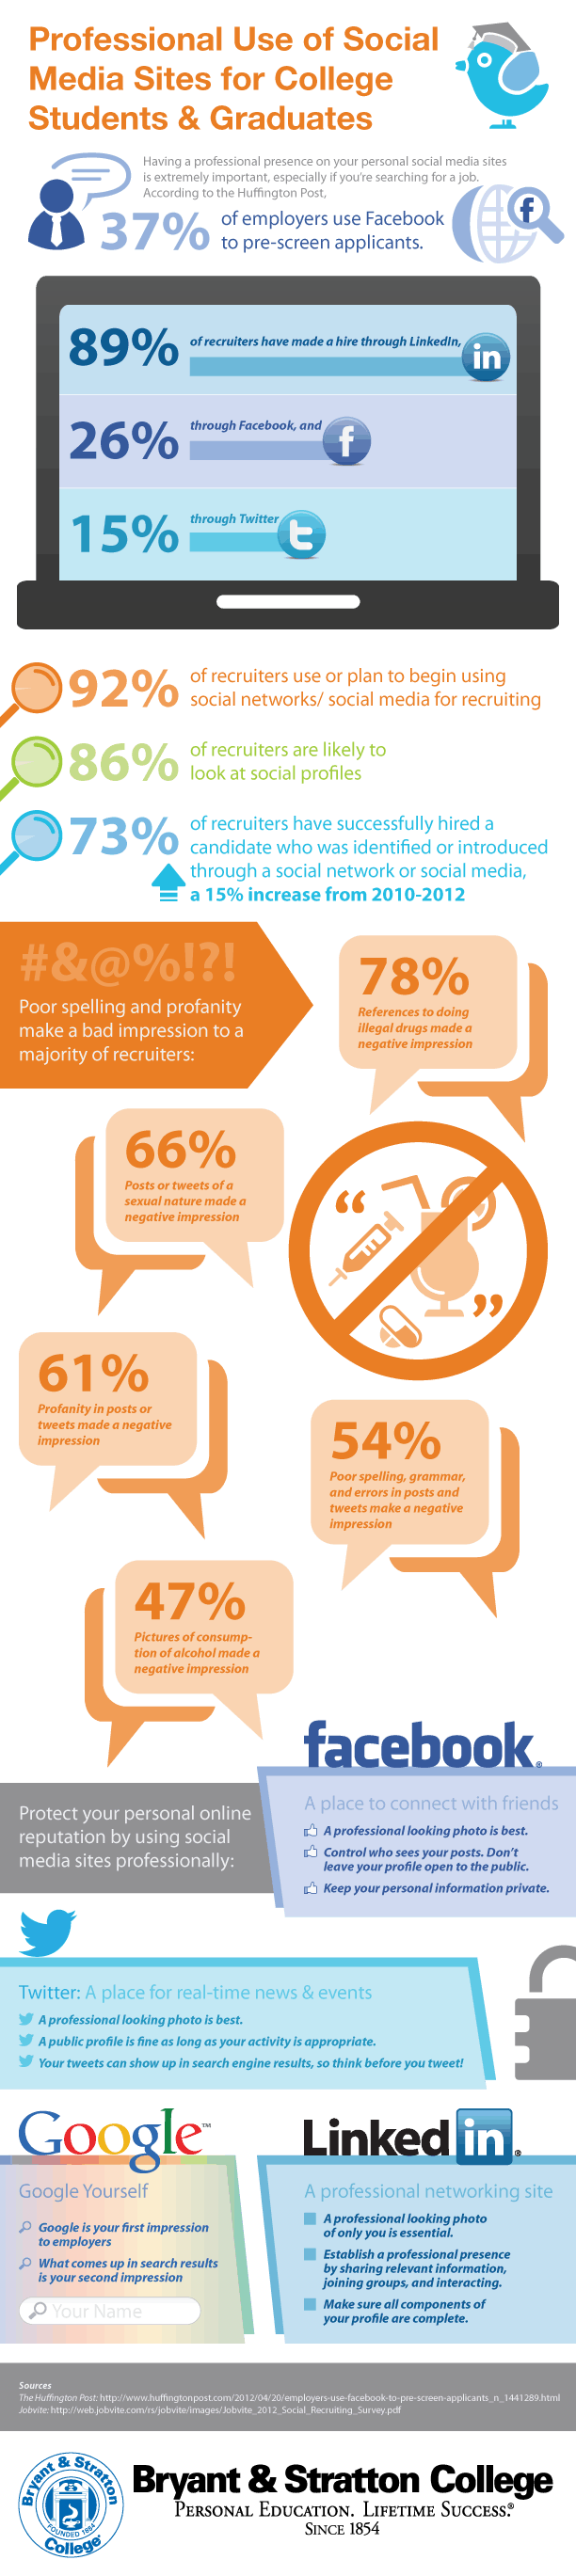 How Students and Graduates Should Use Social Media: Professionally [INFOGRAPHIC]